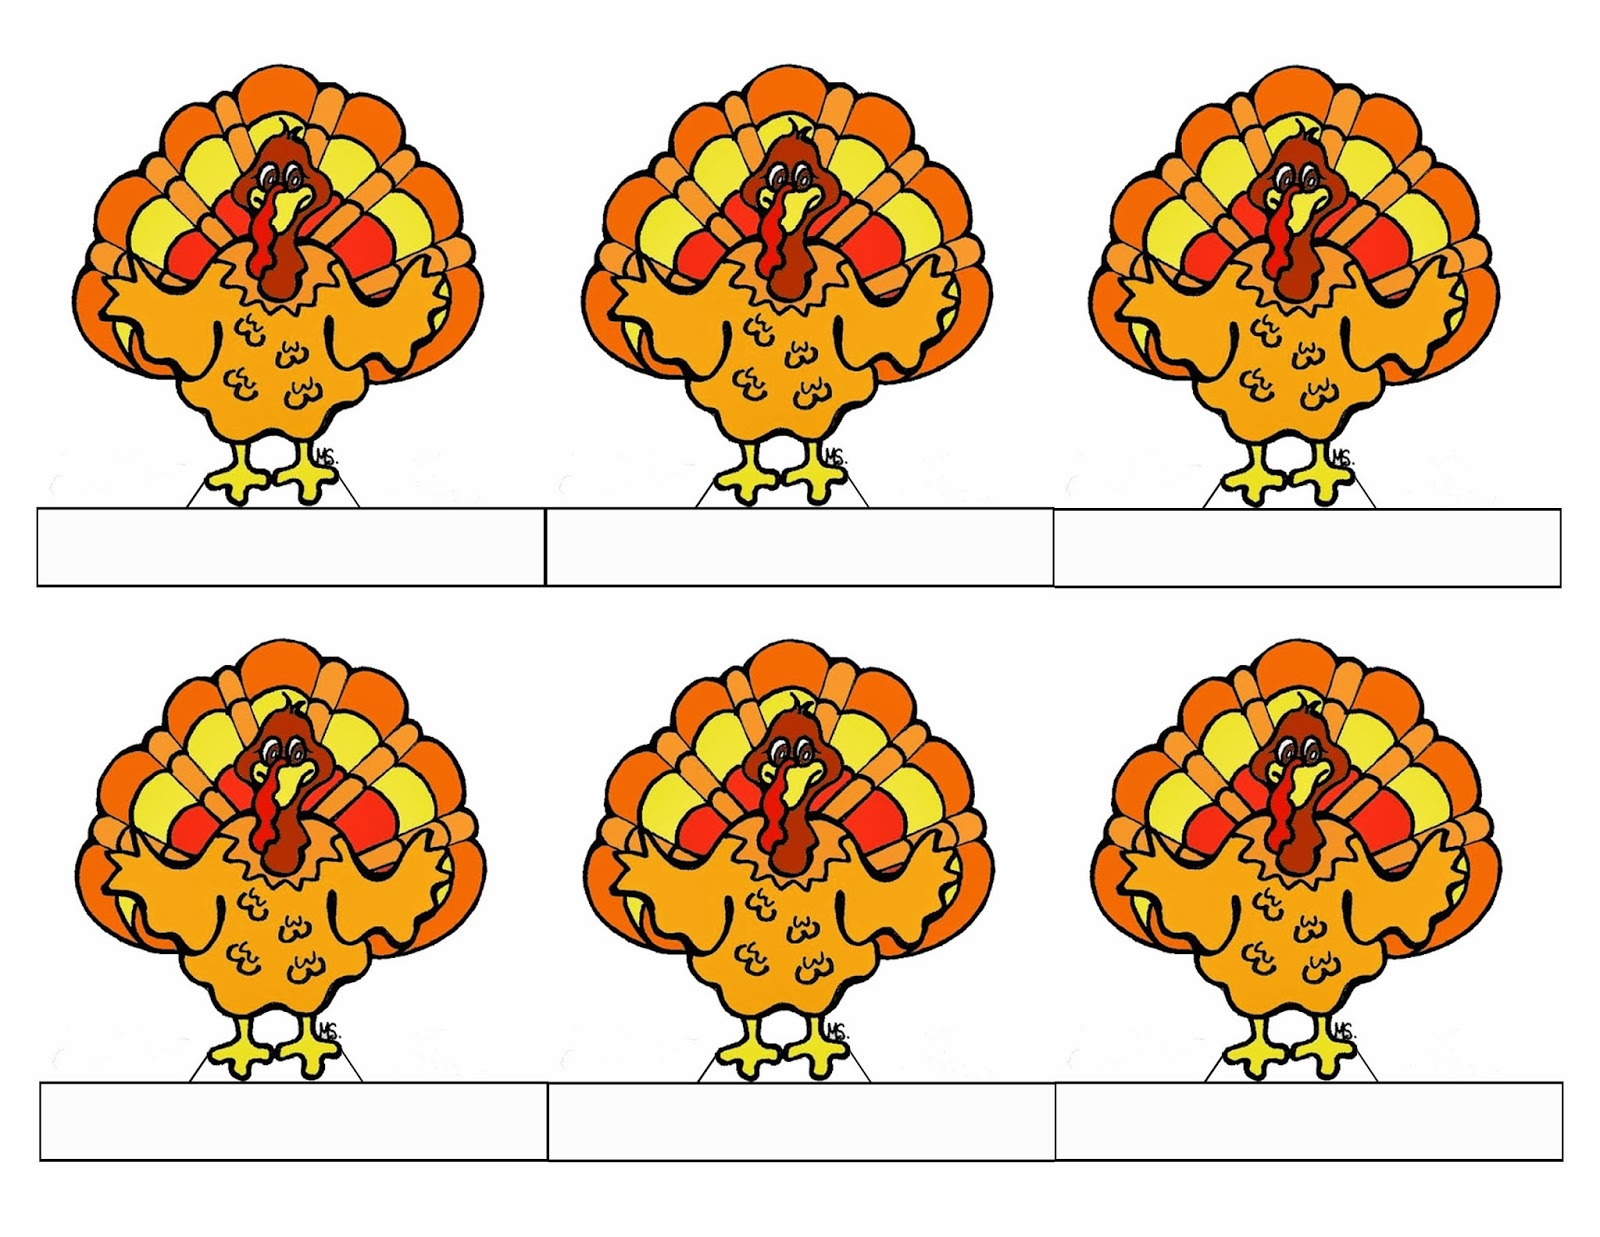 This is a photo of Epic Turkey Shoot Targets Printable